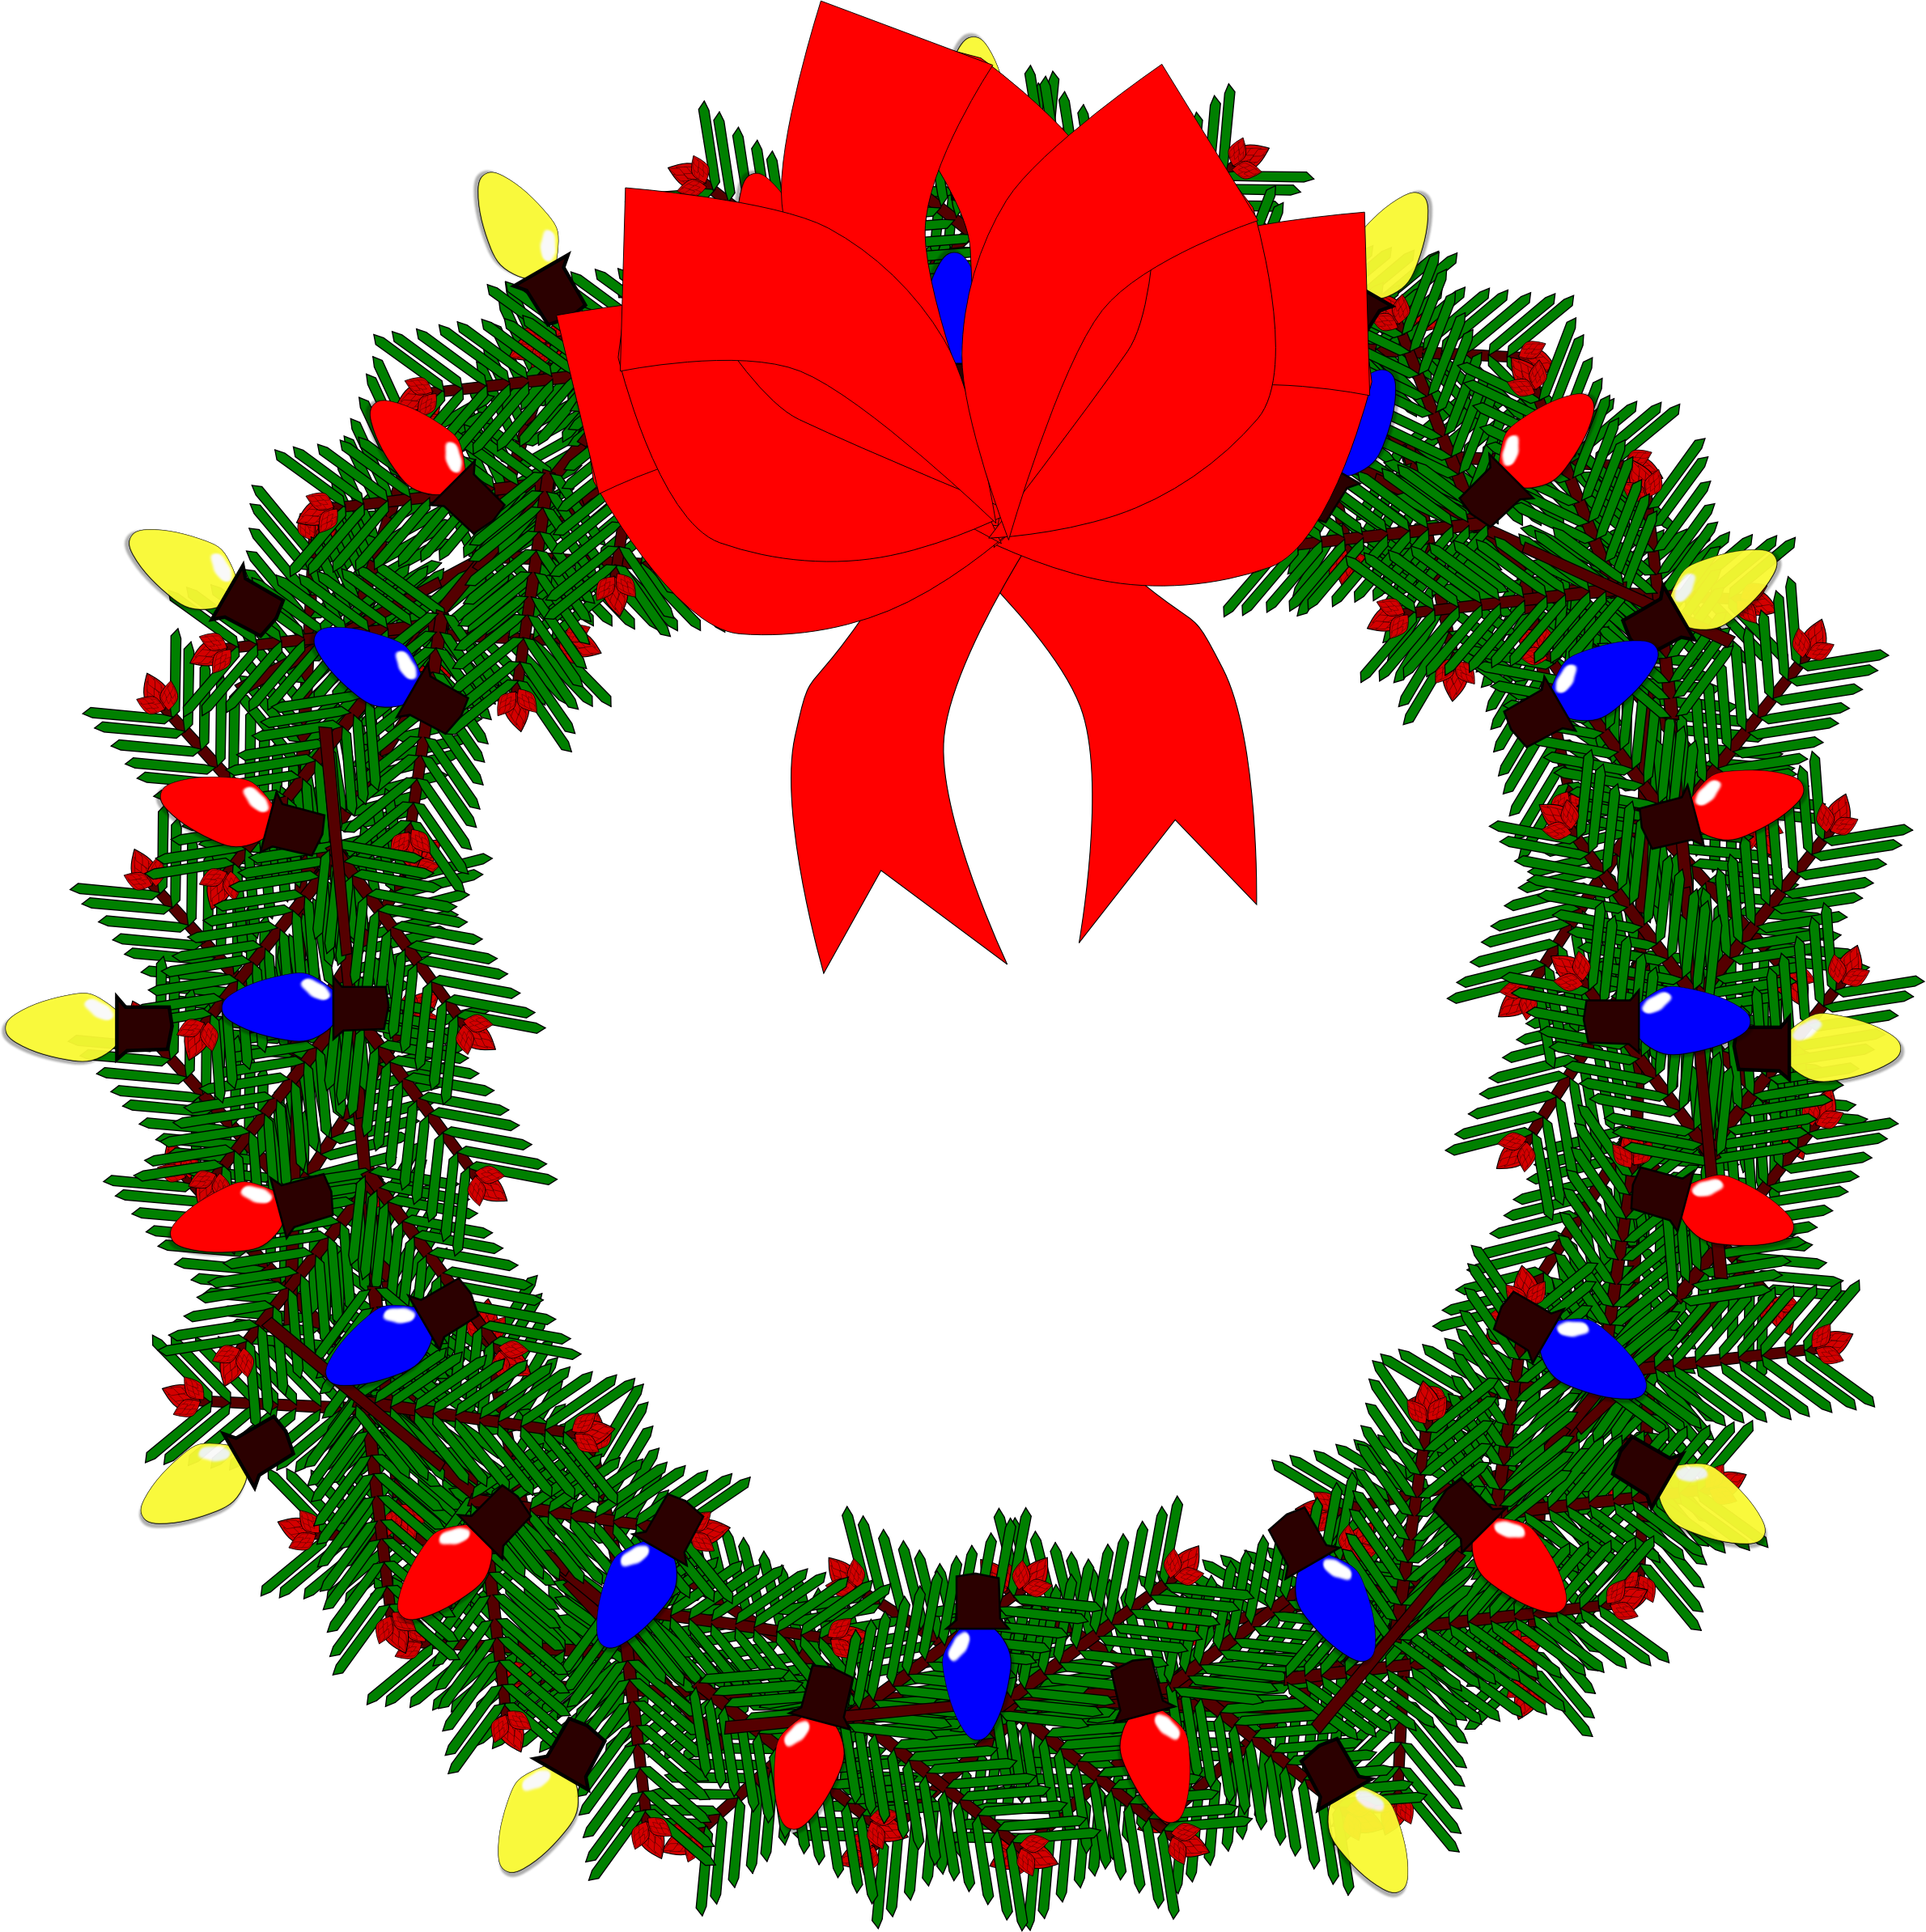 Wreath vector clipart image - Free stock photo - Public ...